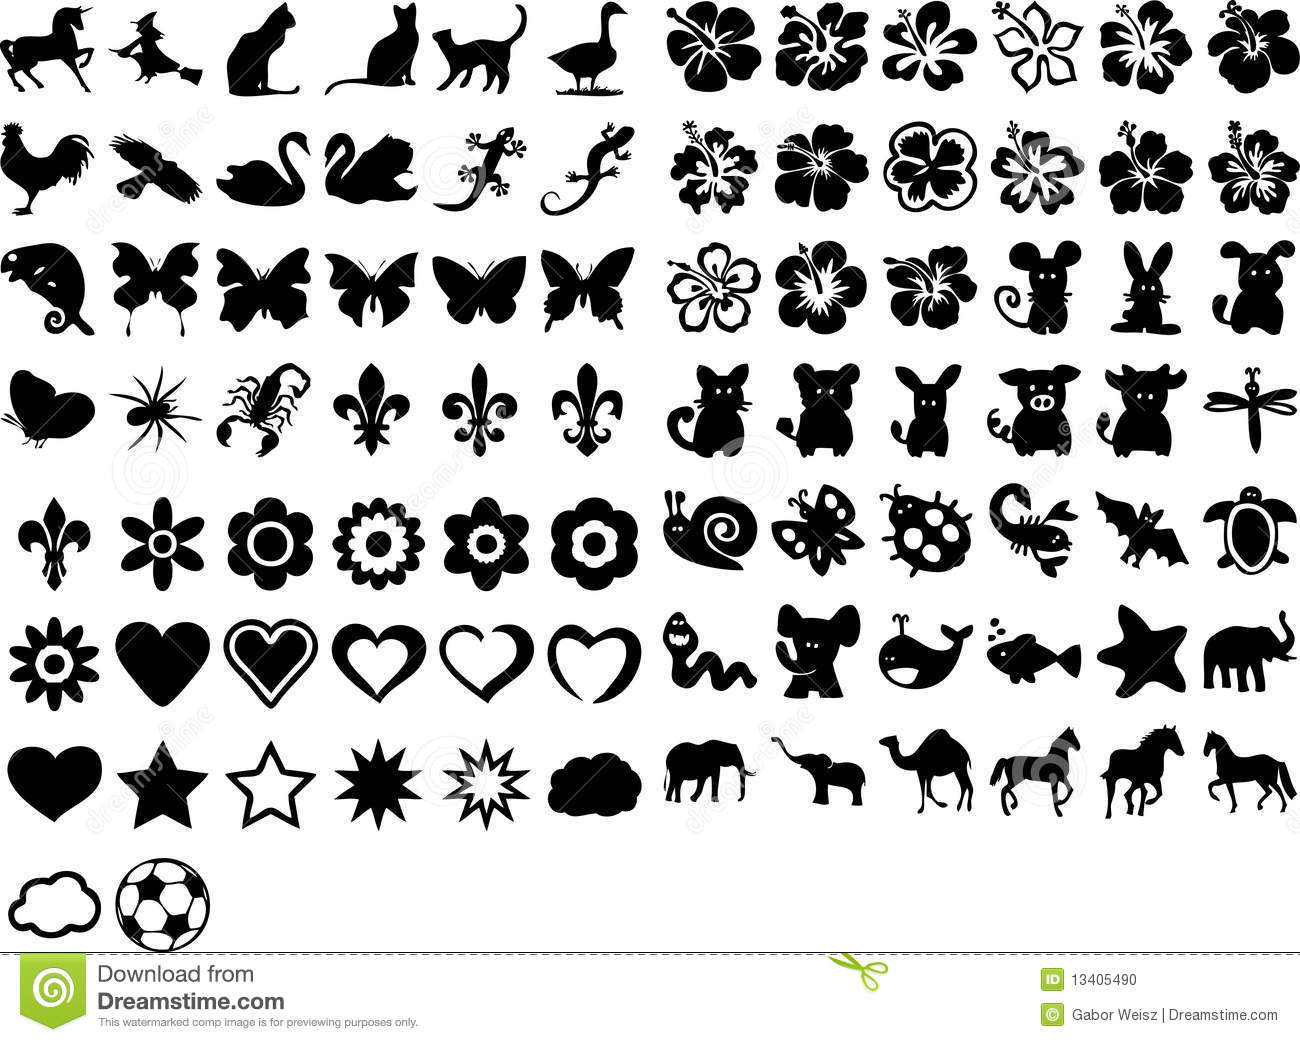 Mixed Metaphor moreover Stock Photo Cute Symbols Image13405490 as well Stock Illustration Deer Head Dream Catcher Hand Drawn Romantic Beautiful Drawing Vector Illustration Ethnic Design Tattoo Element Image65135086 moreover 352388 Thank You Calligraphy In Vector together with Taint By Ashish Vfiles Shirts. on love illustrations